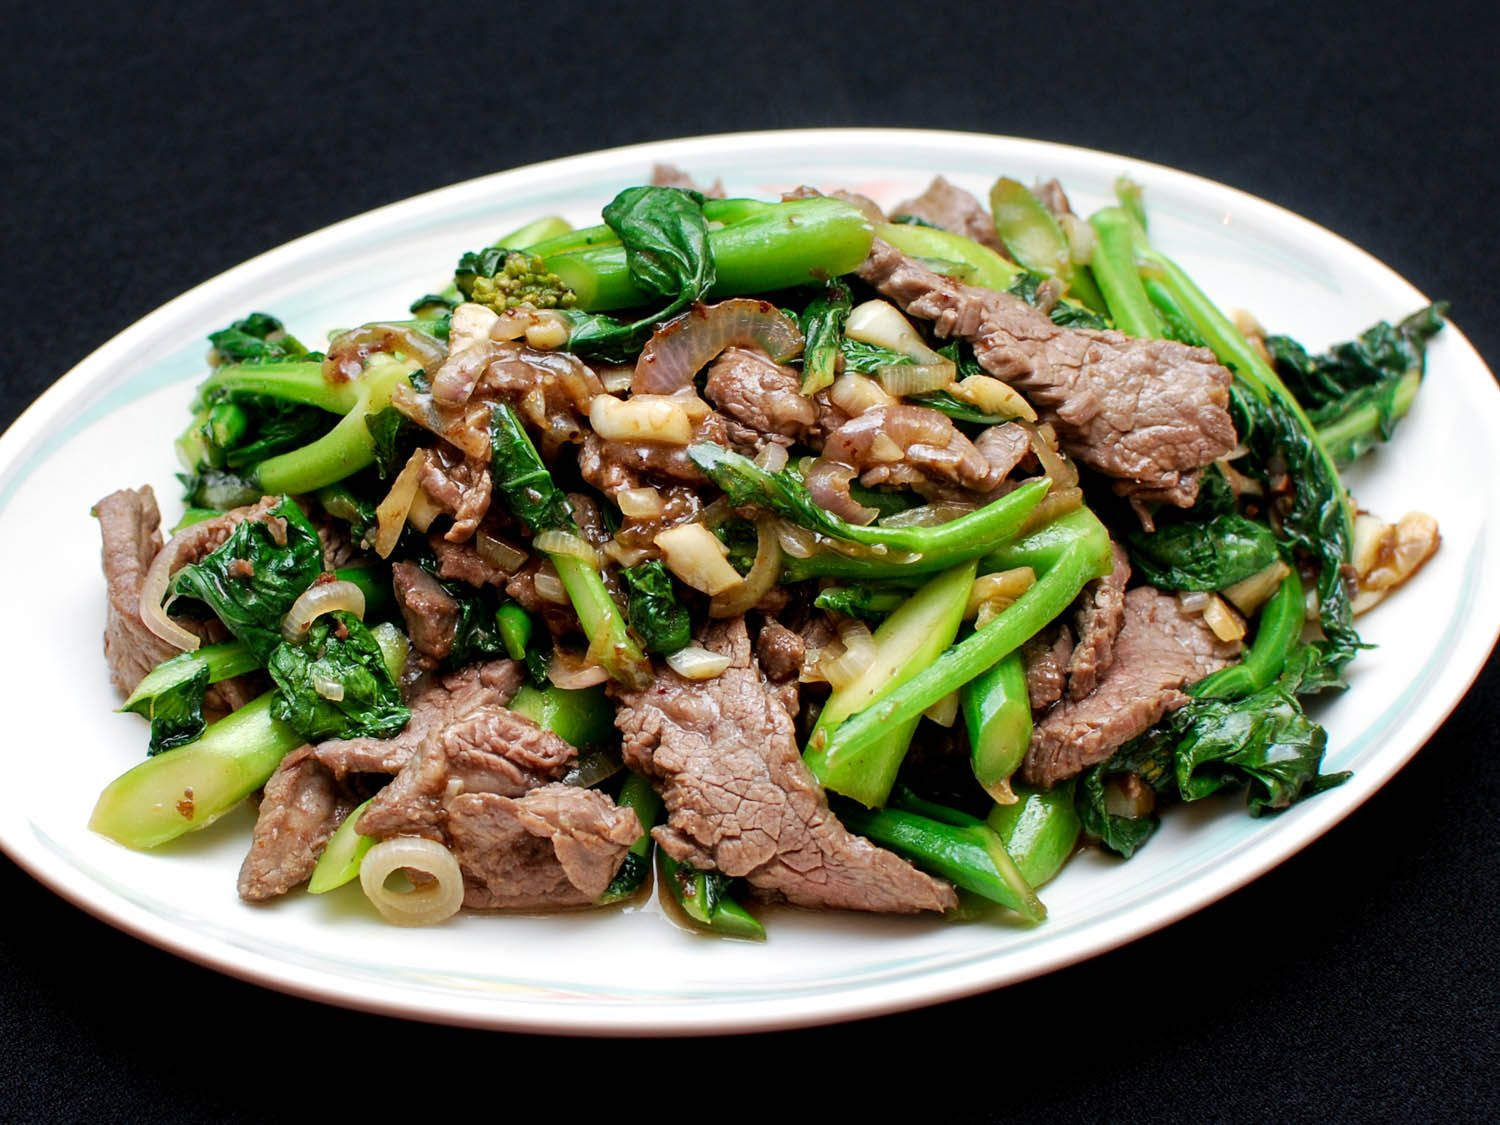 Chinese Stir Fry Recipes  Stir Fried Beef With Chinese Broccoli Recipe